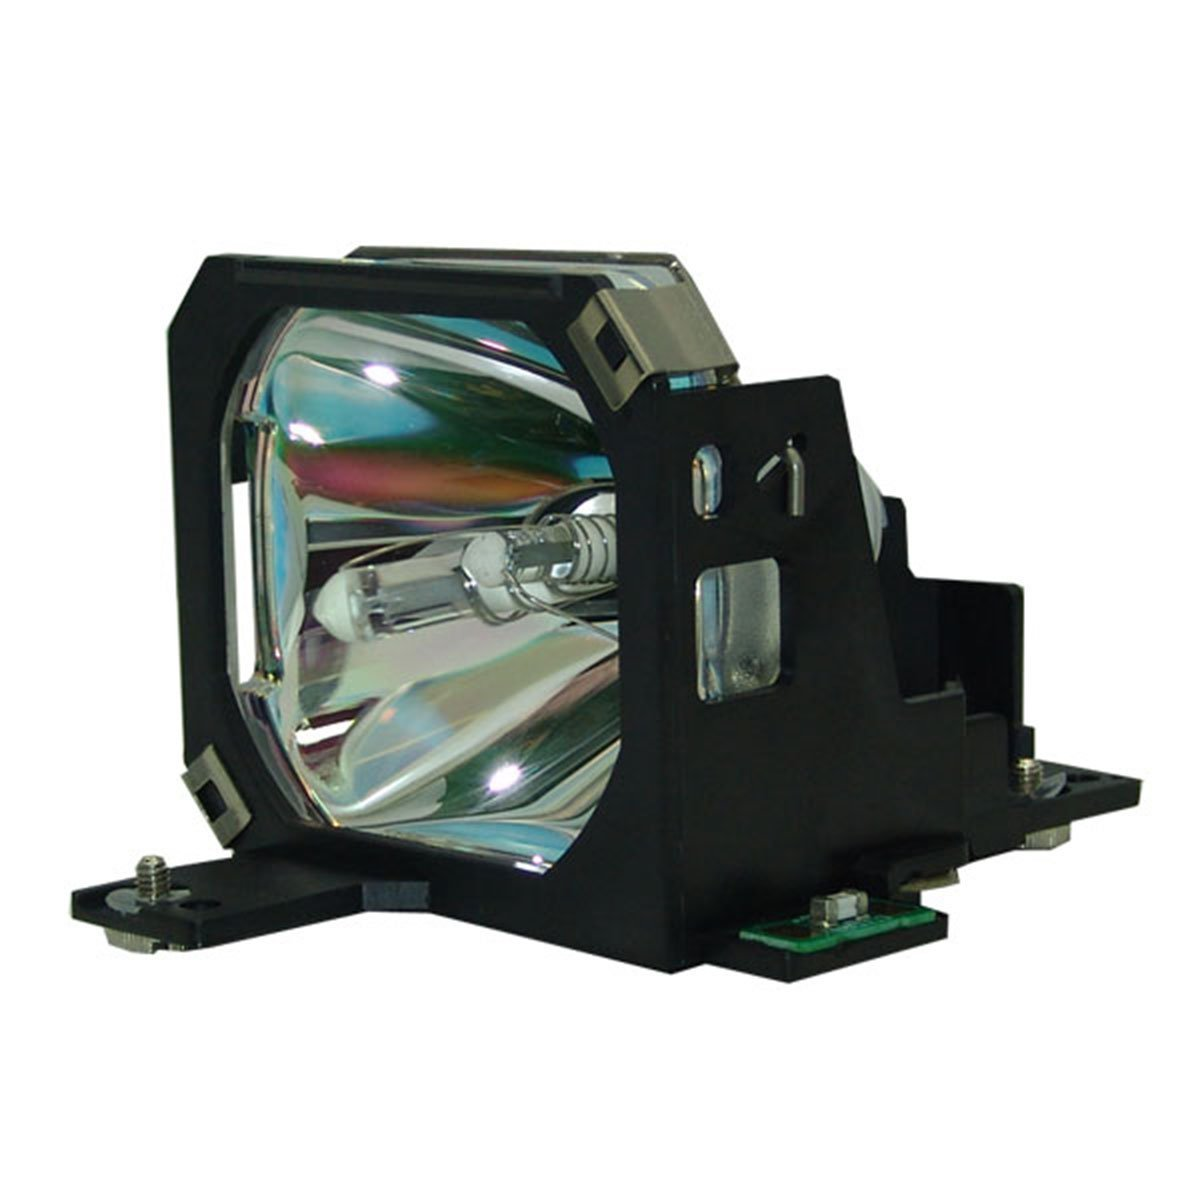 Brand New ELPLP07/V13H010L07 Replacement Projector Lamp With Housing For EPSON EMP-5550/EMP-7550/PowerLite 5550C/PowerLite 7550C